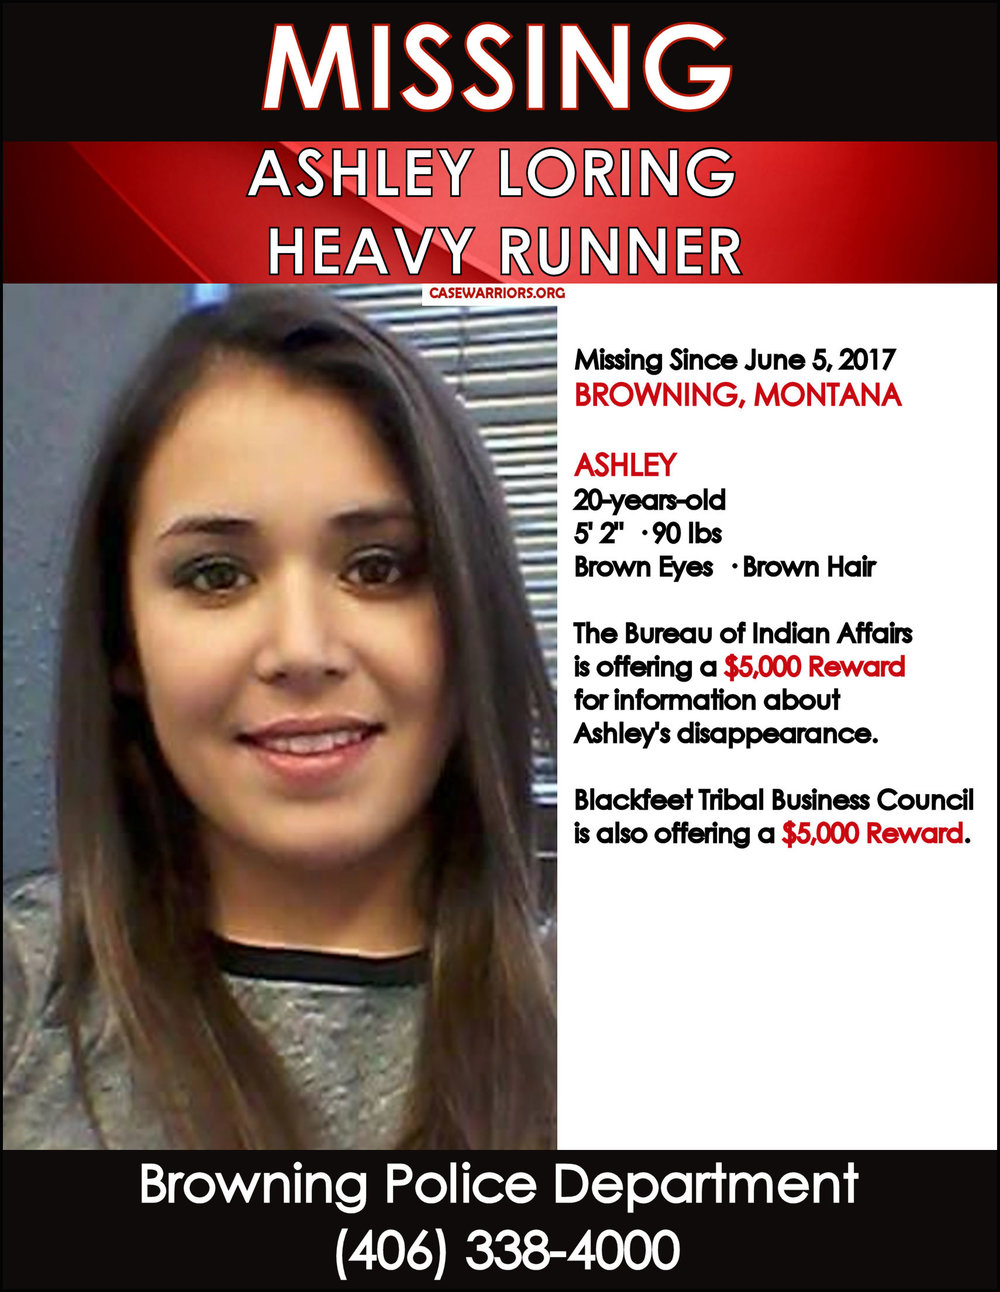 ASHLEY LORING HEAVY RUNNER